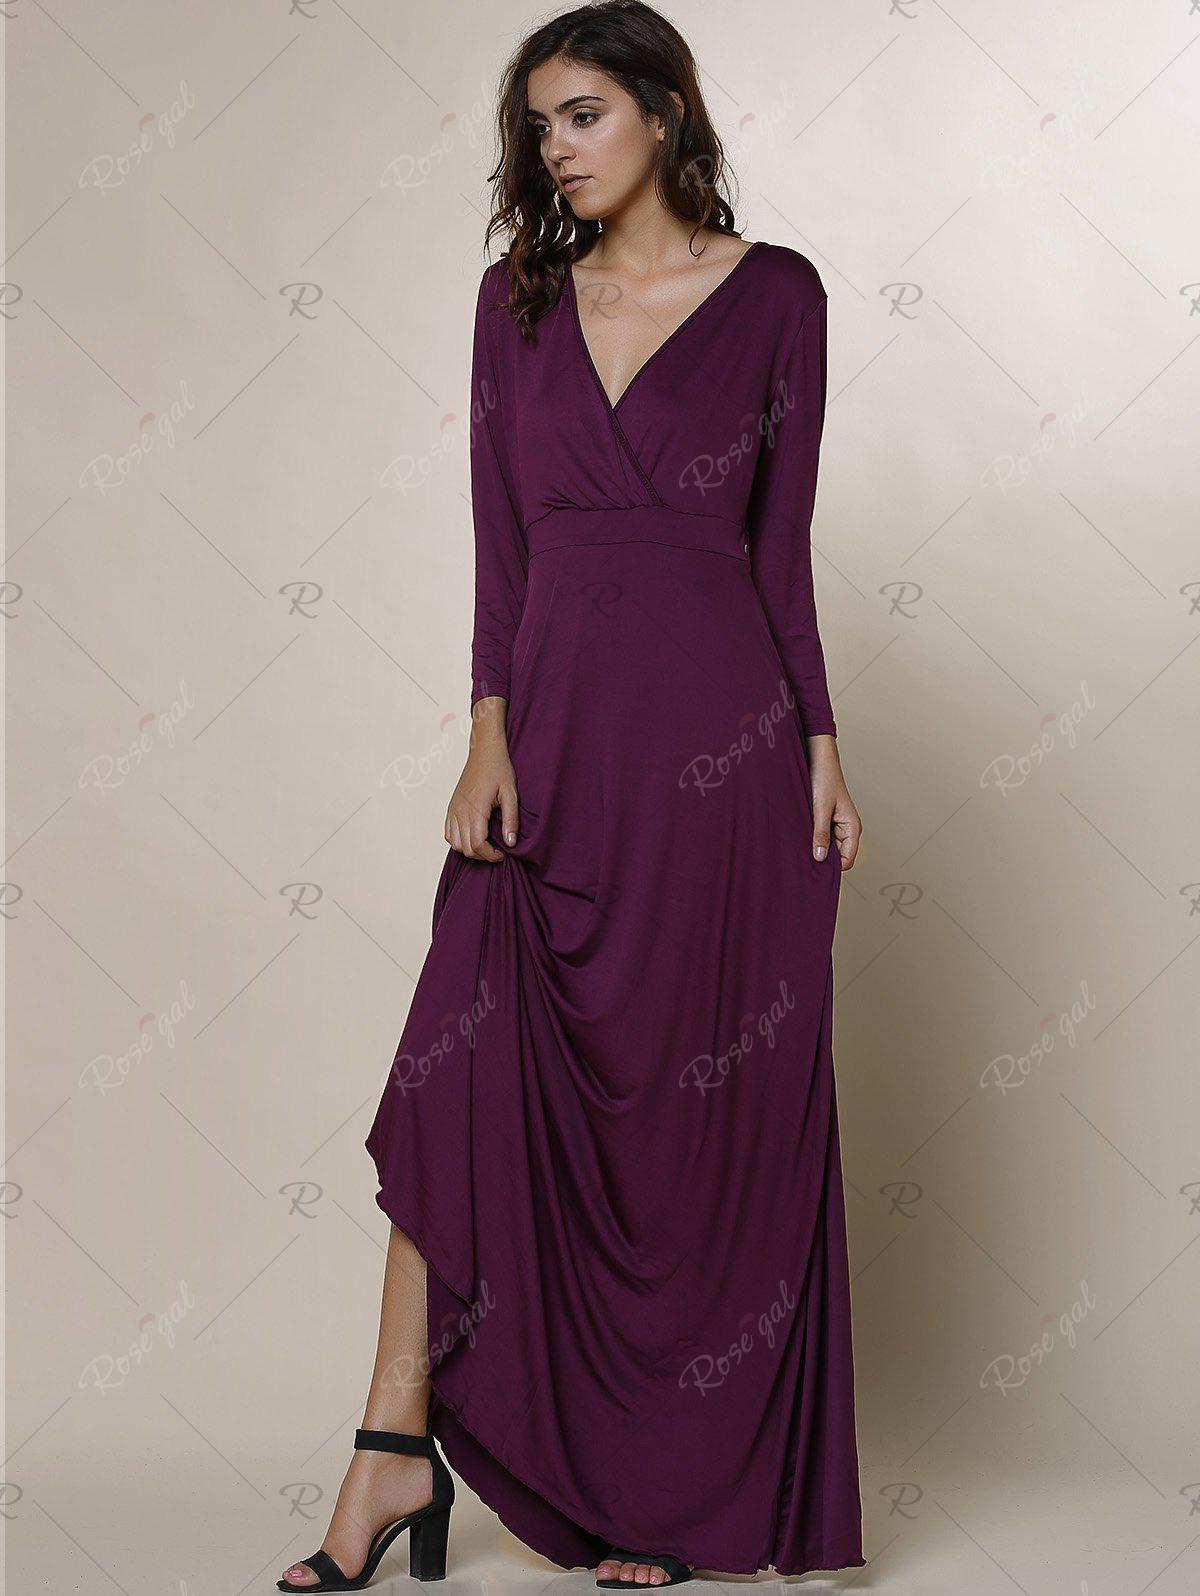 purple 2xl plus size low cut prom dress with sleeves